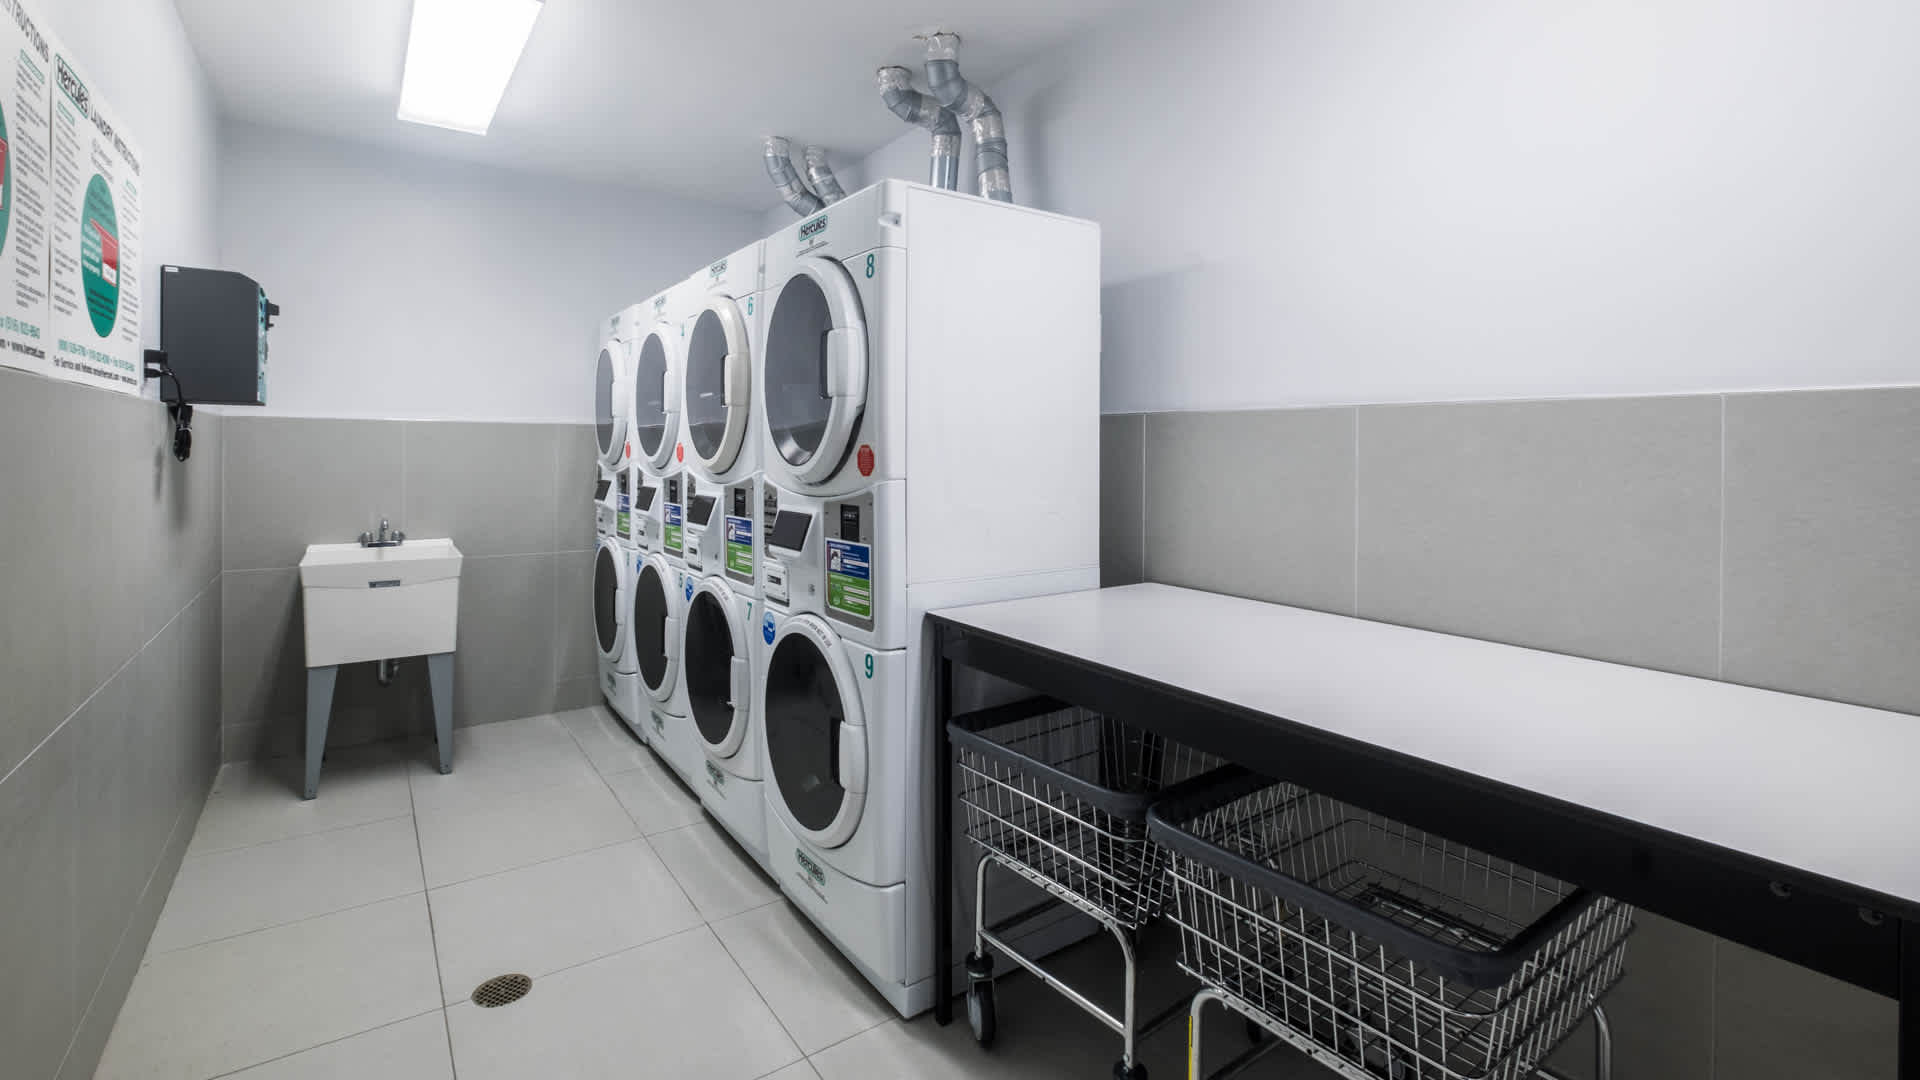 Atelier apartments laundry room